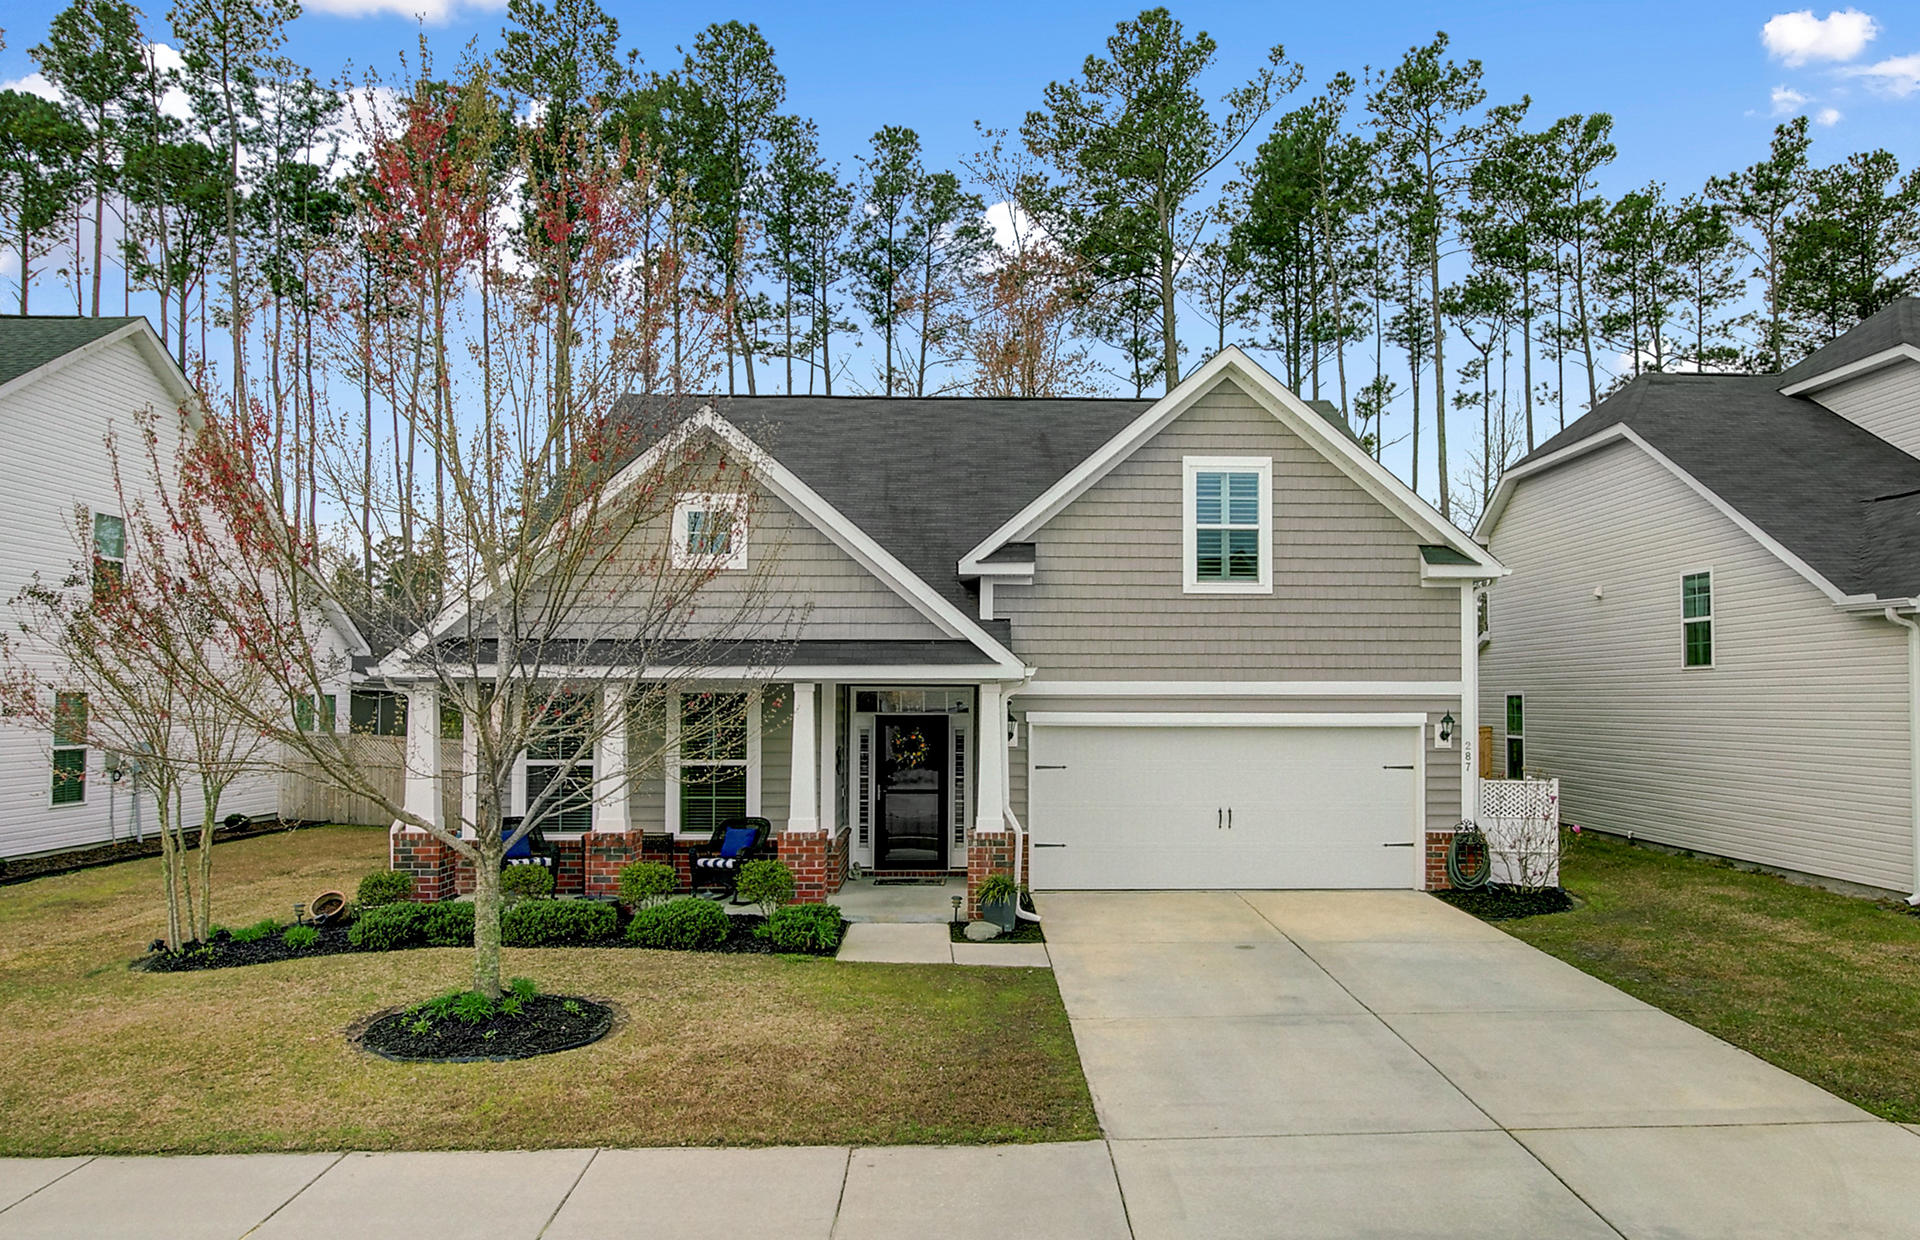 287 Spectrum Road Summerville, Sc 29486